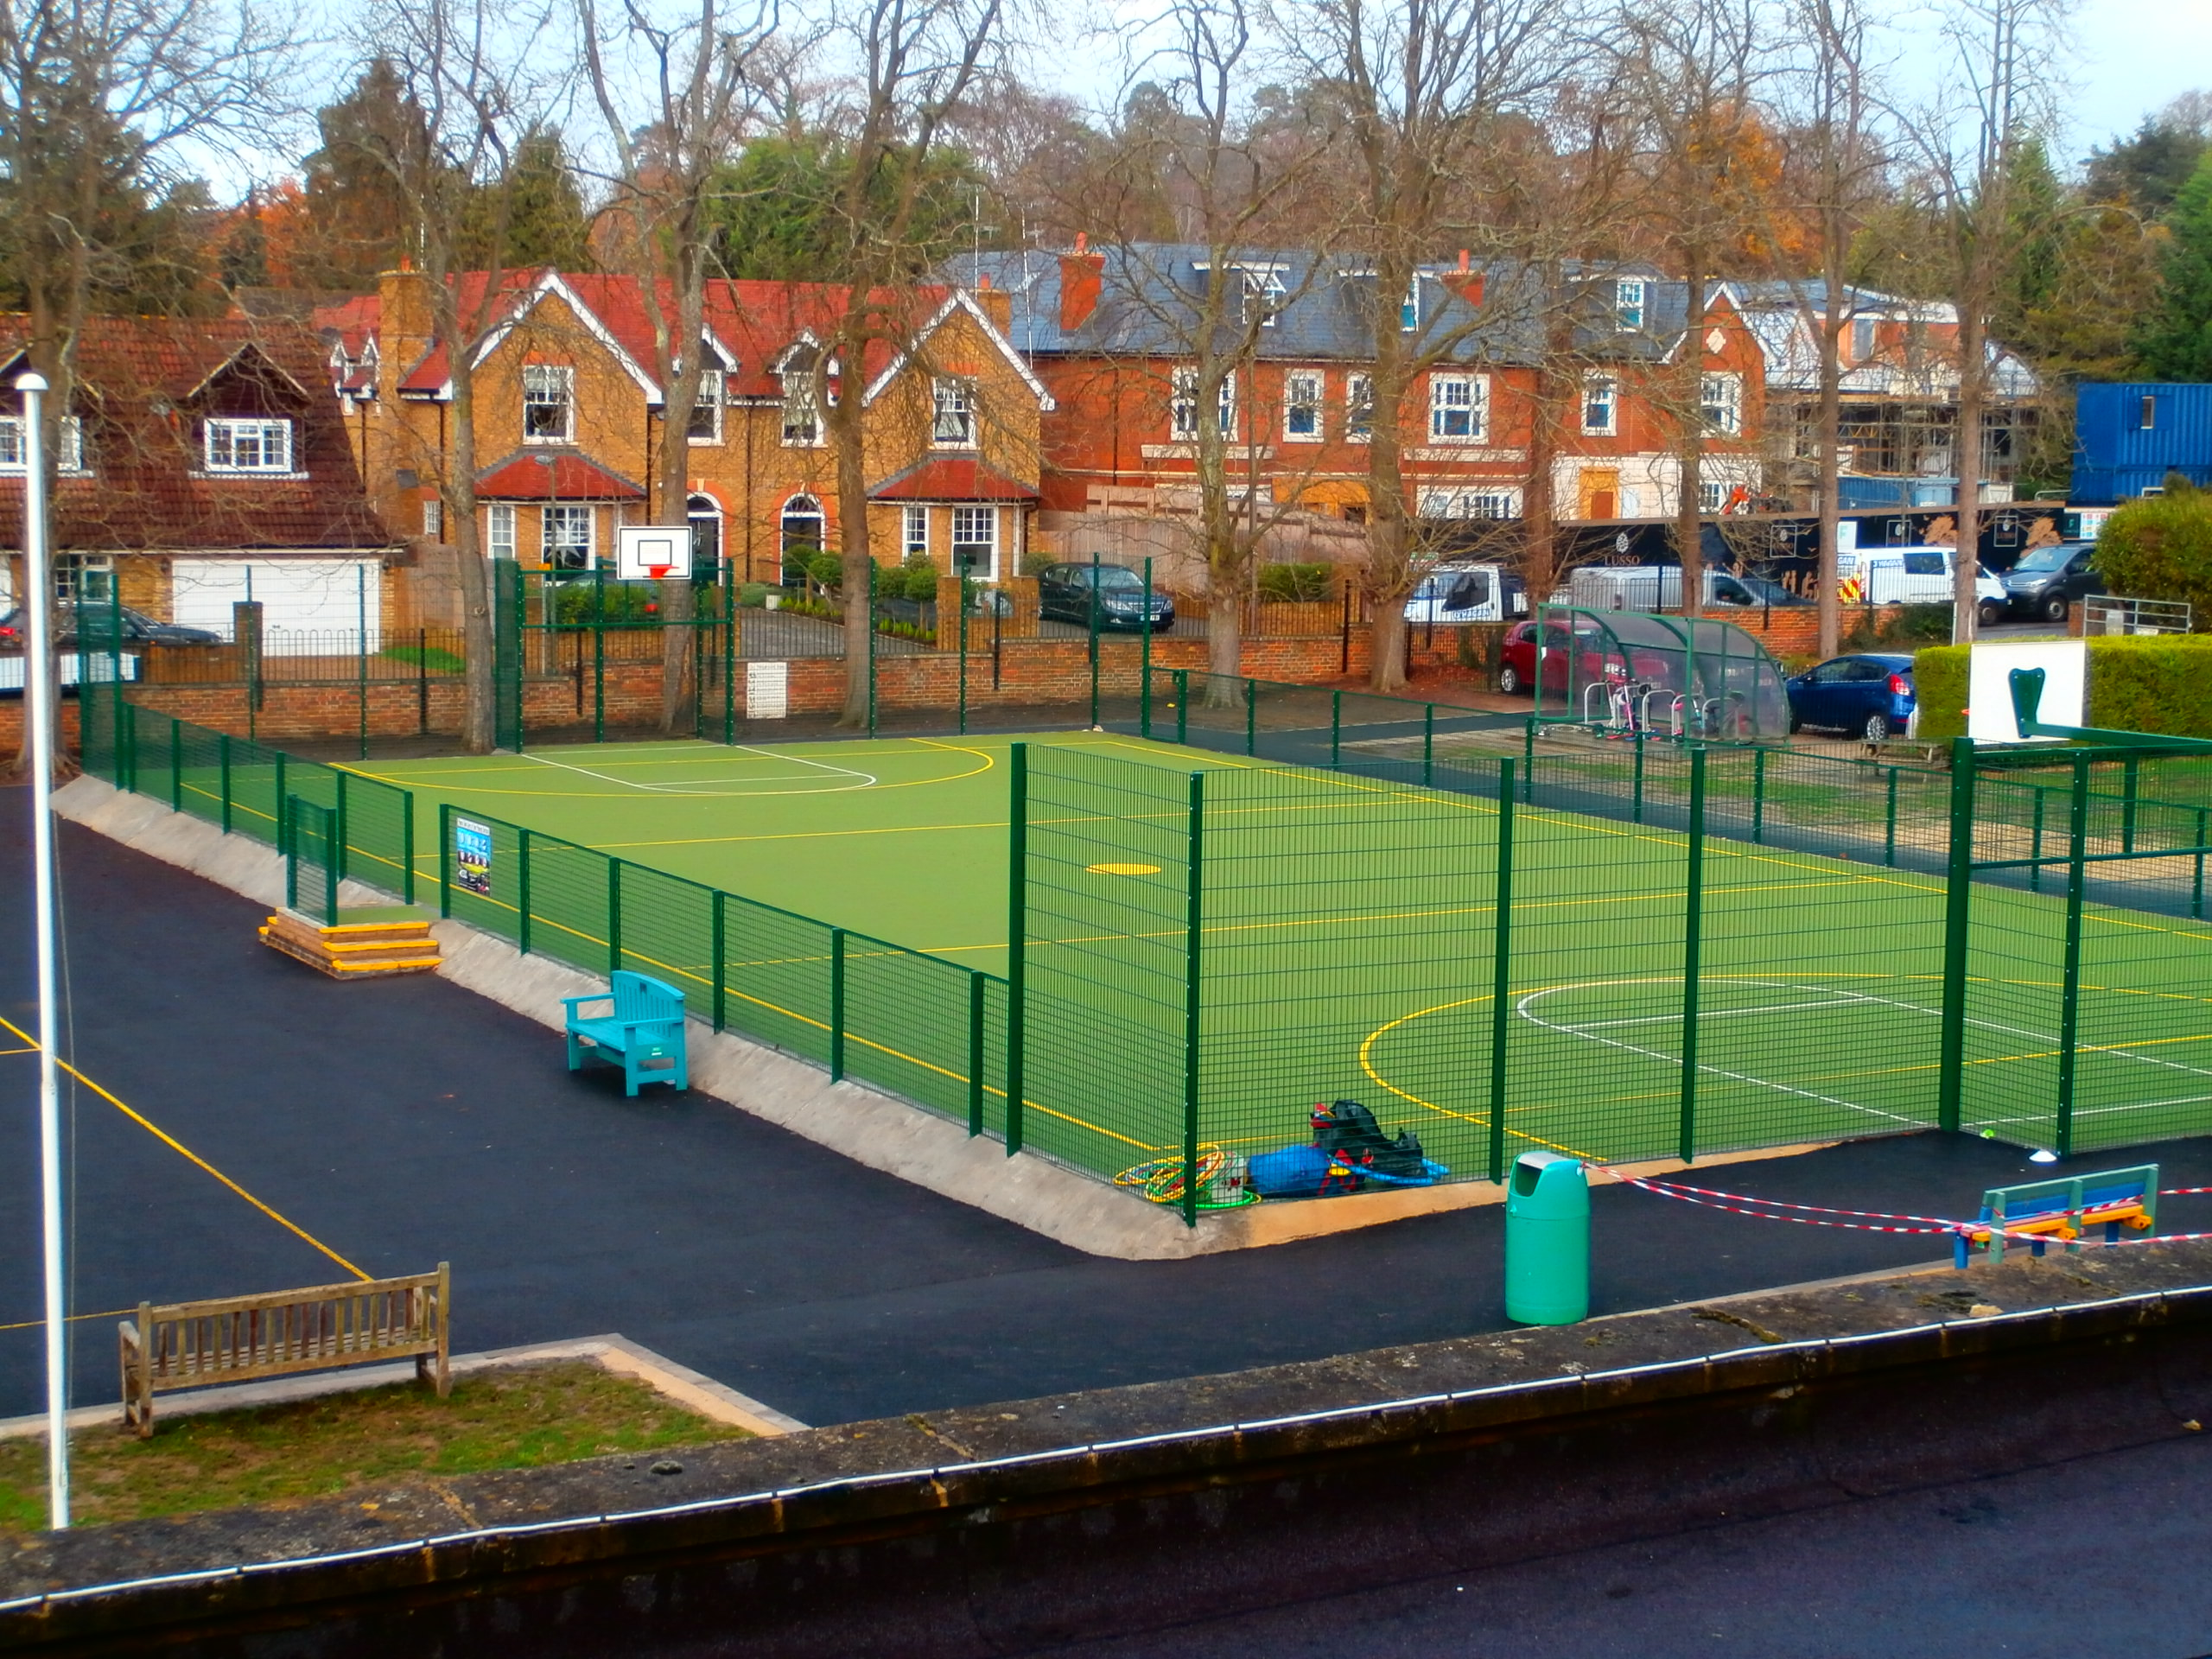 A bird's eye view of the brand new MUGA pitch at Royal Kent School in Surrey